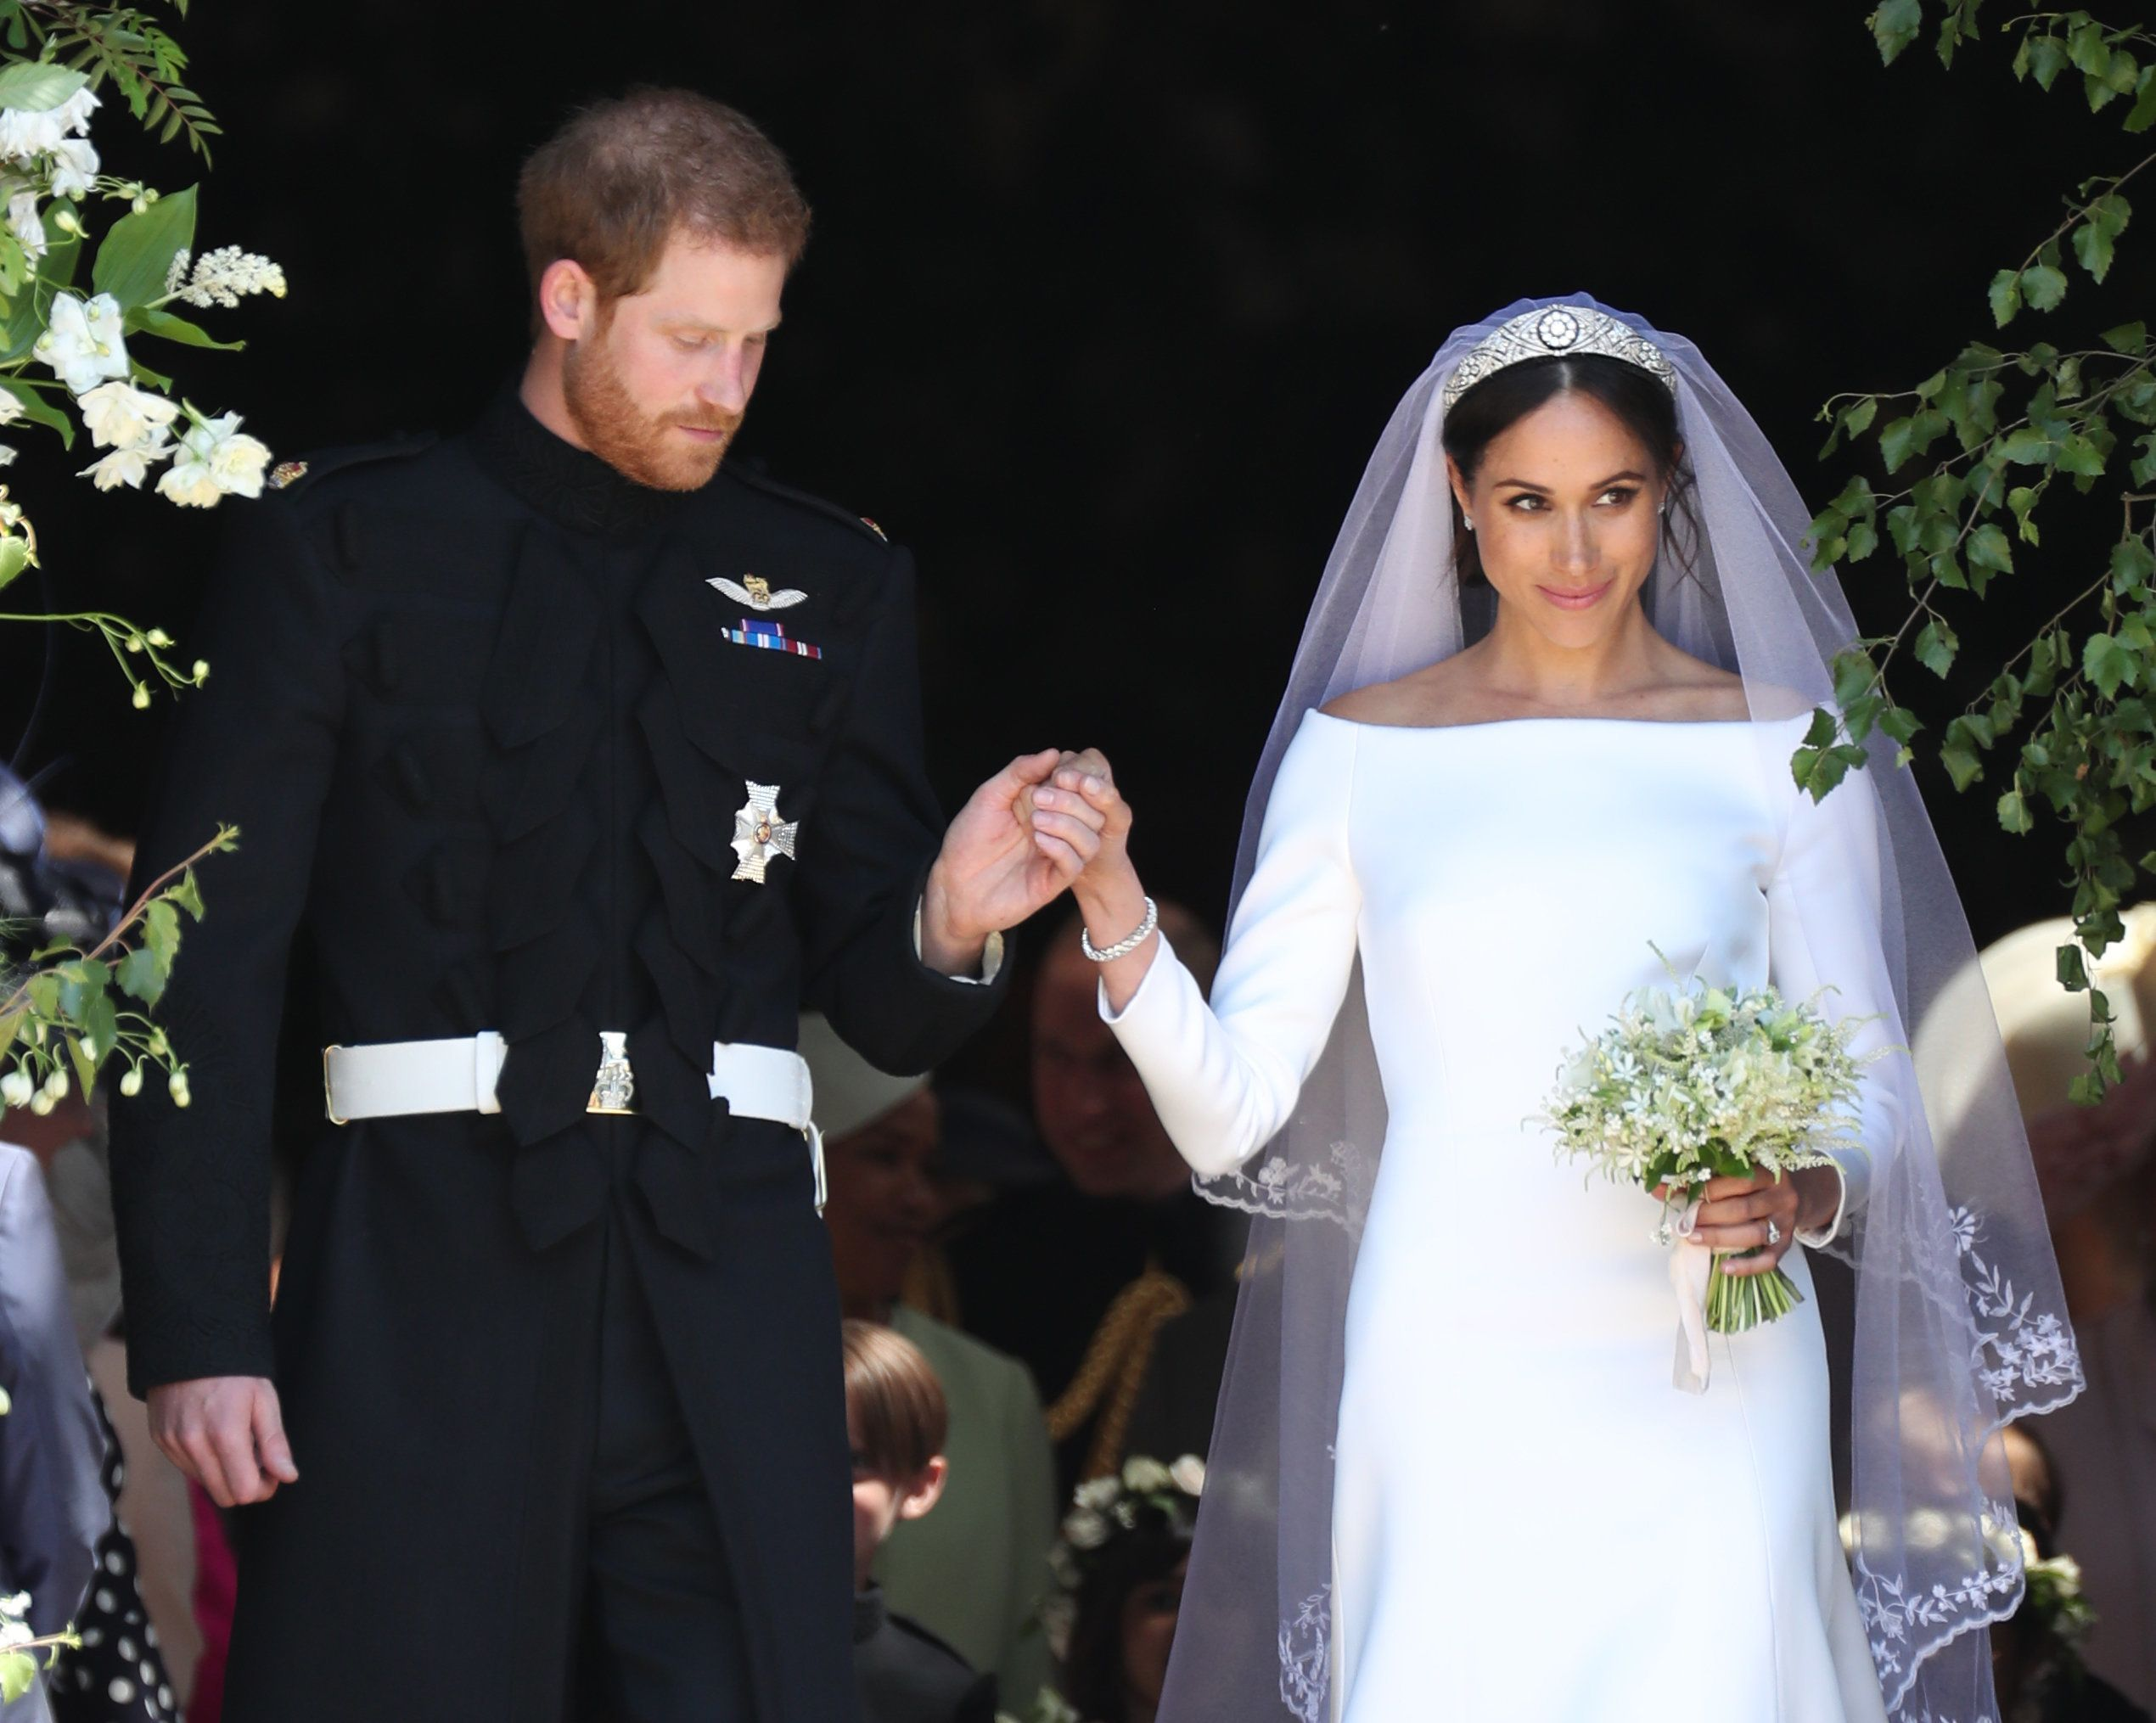 Meghan Markle's Wedding Dress To Go On Display This